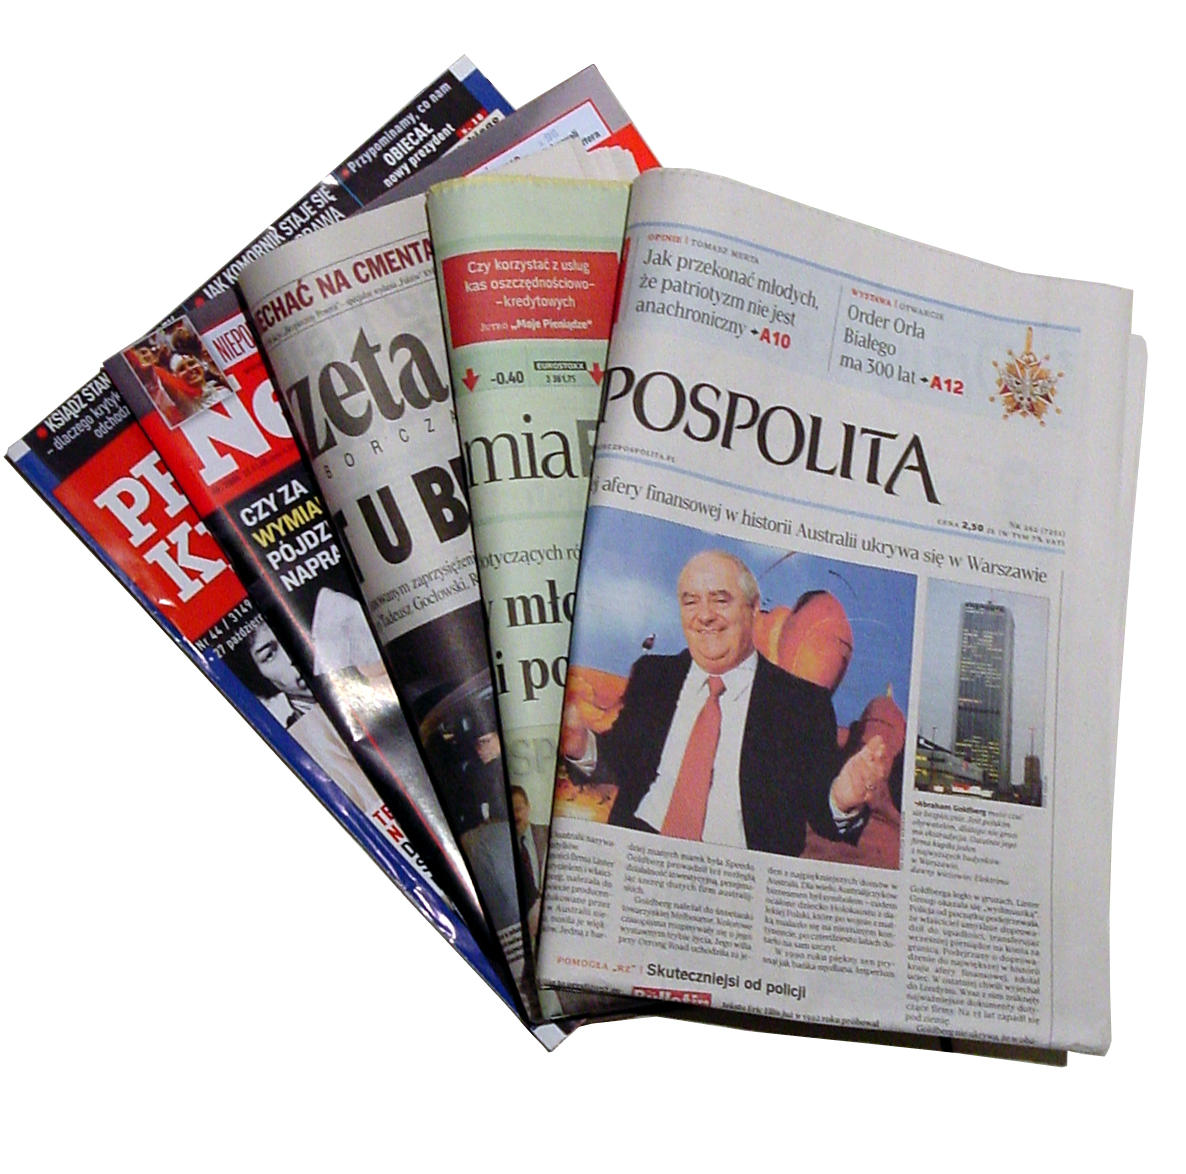 How to Write a Good Press Release: 5 Tips For A Newsworthy Promotions